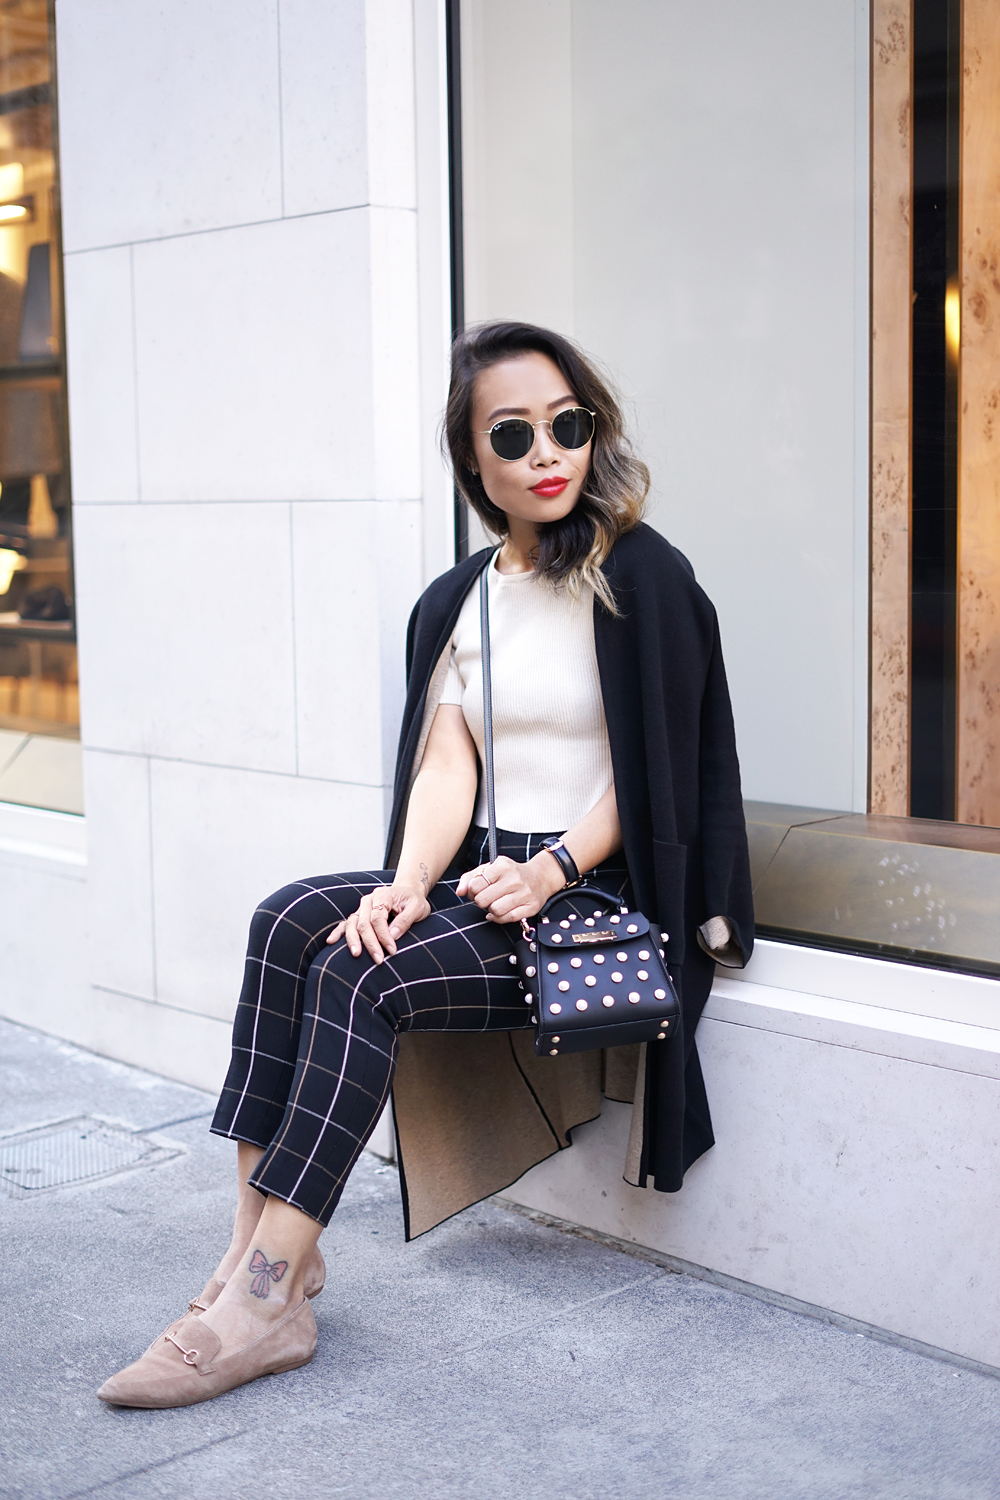 06maidenlane-sf-fashion-style-ootd